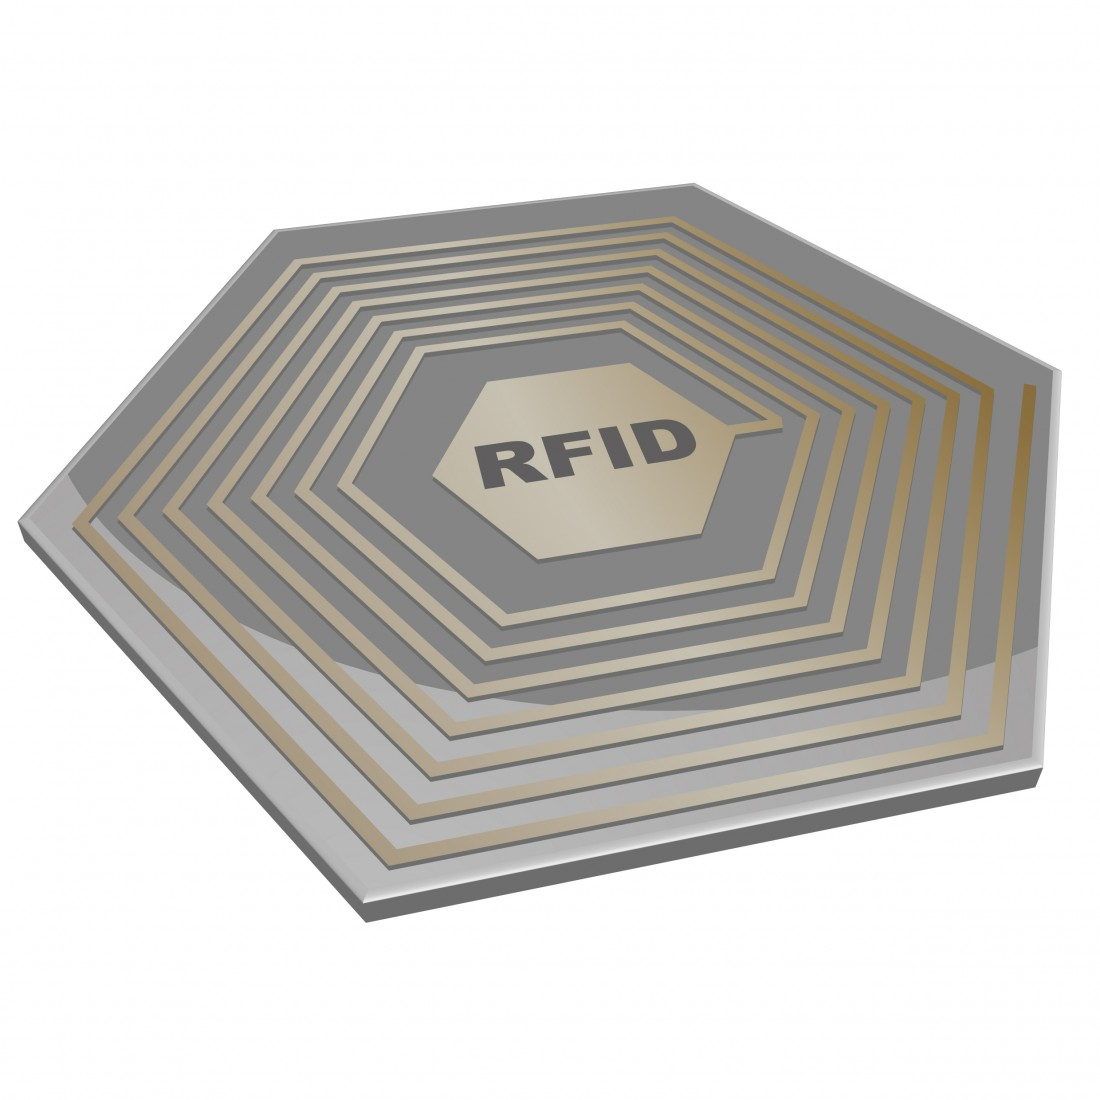 RFID - supply chain technology